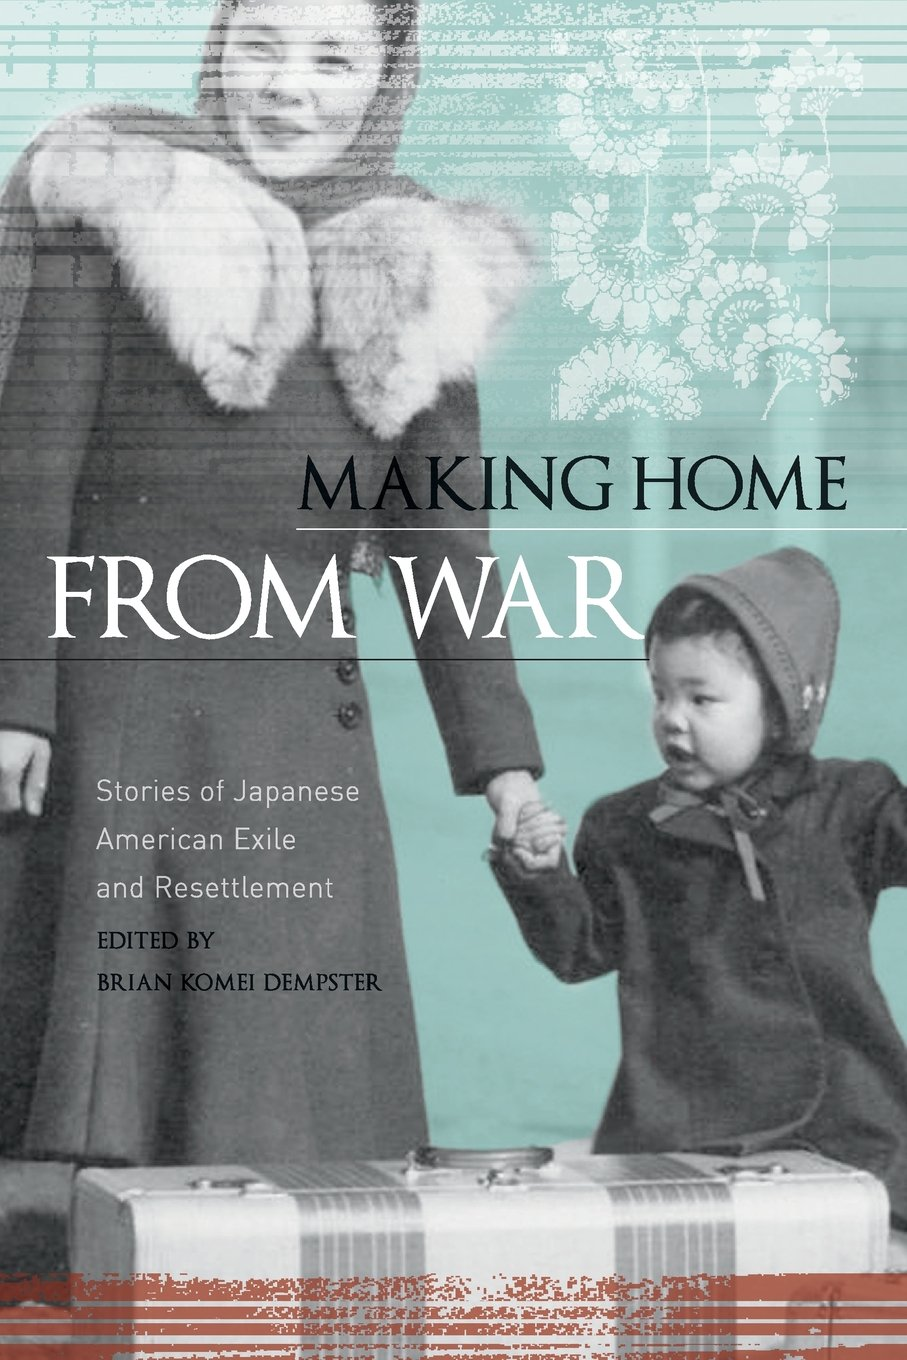 Making Home from War: Stories of Japanese American Exile and Resettlement